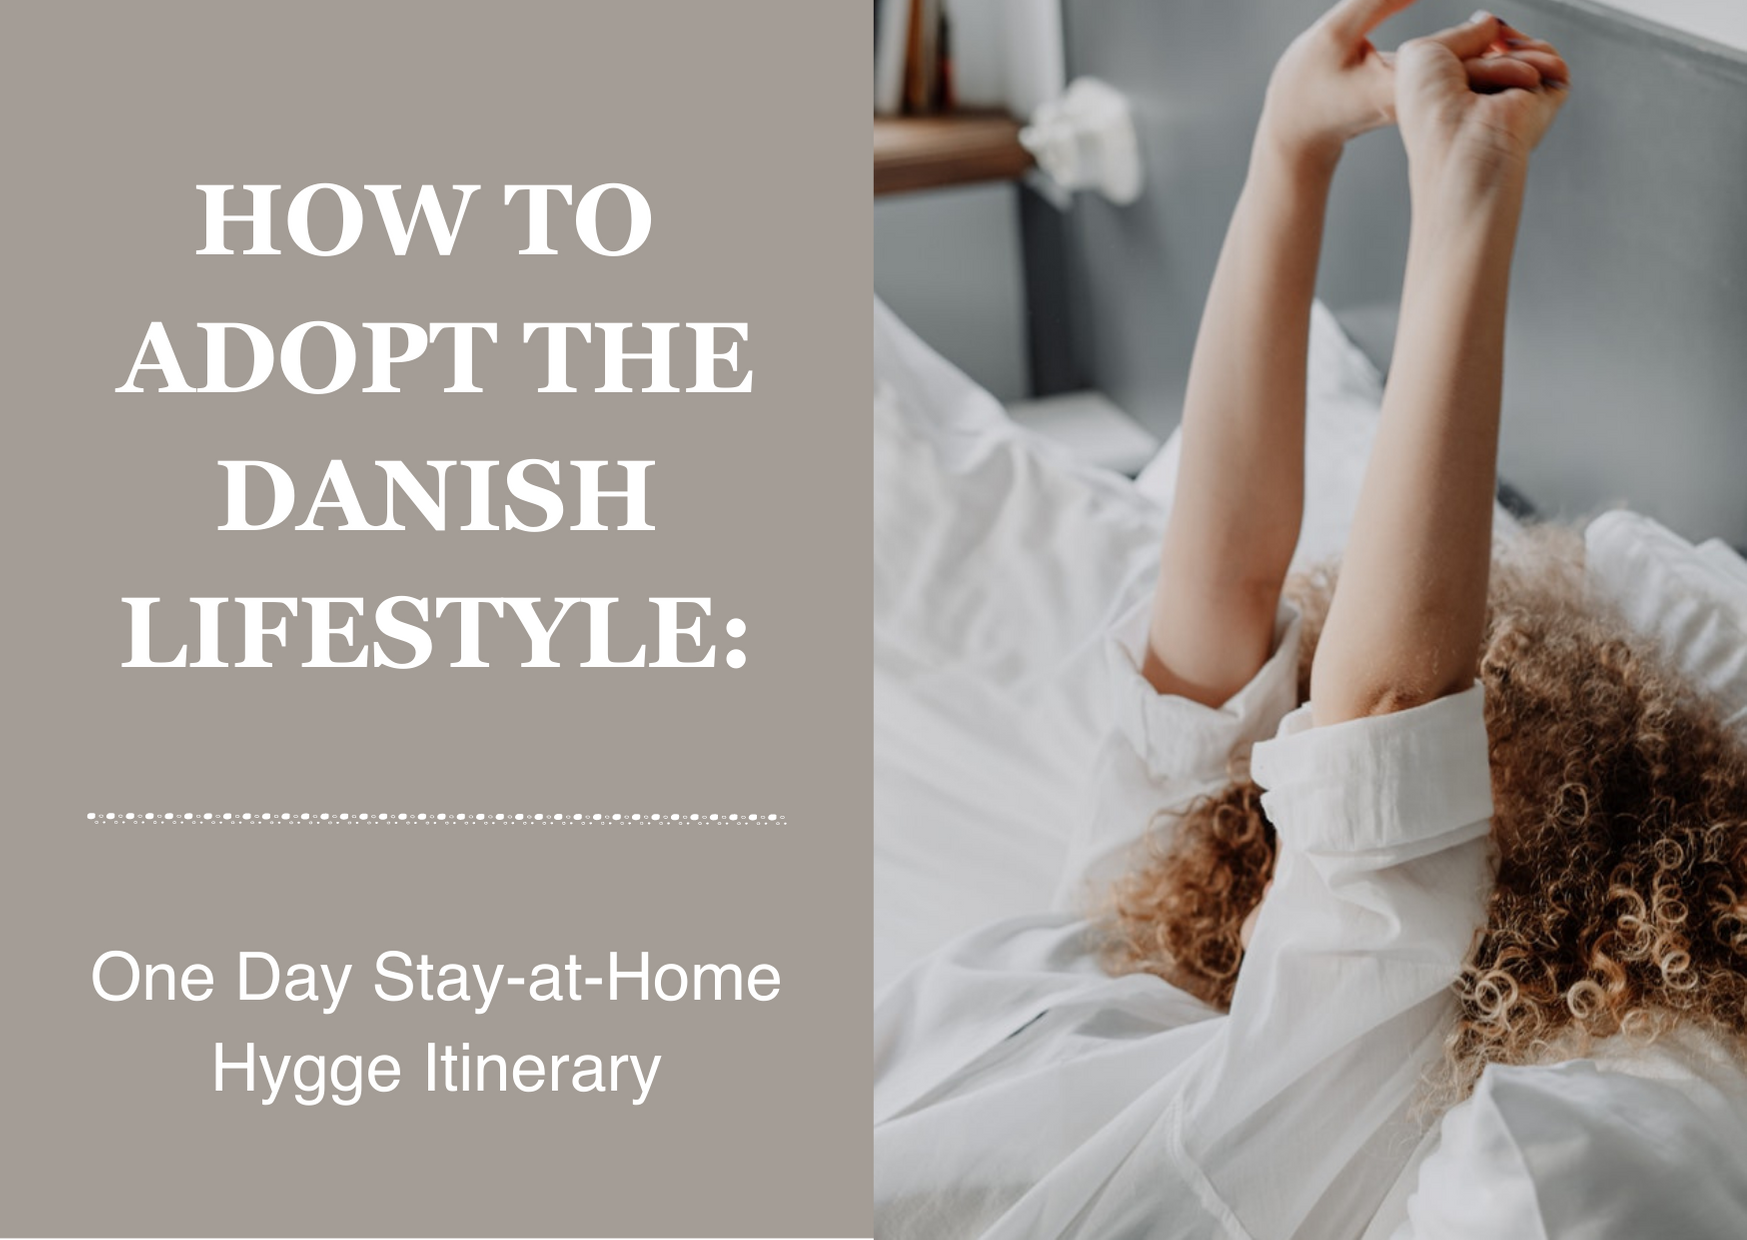 How to adopt the danish lifestyle with curly haired woman stretching luxuriously